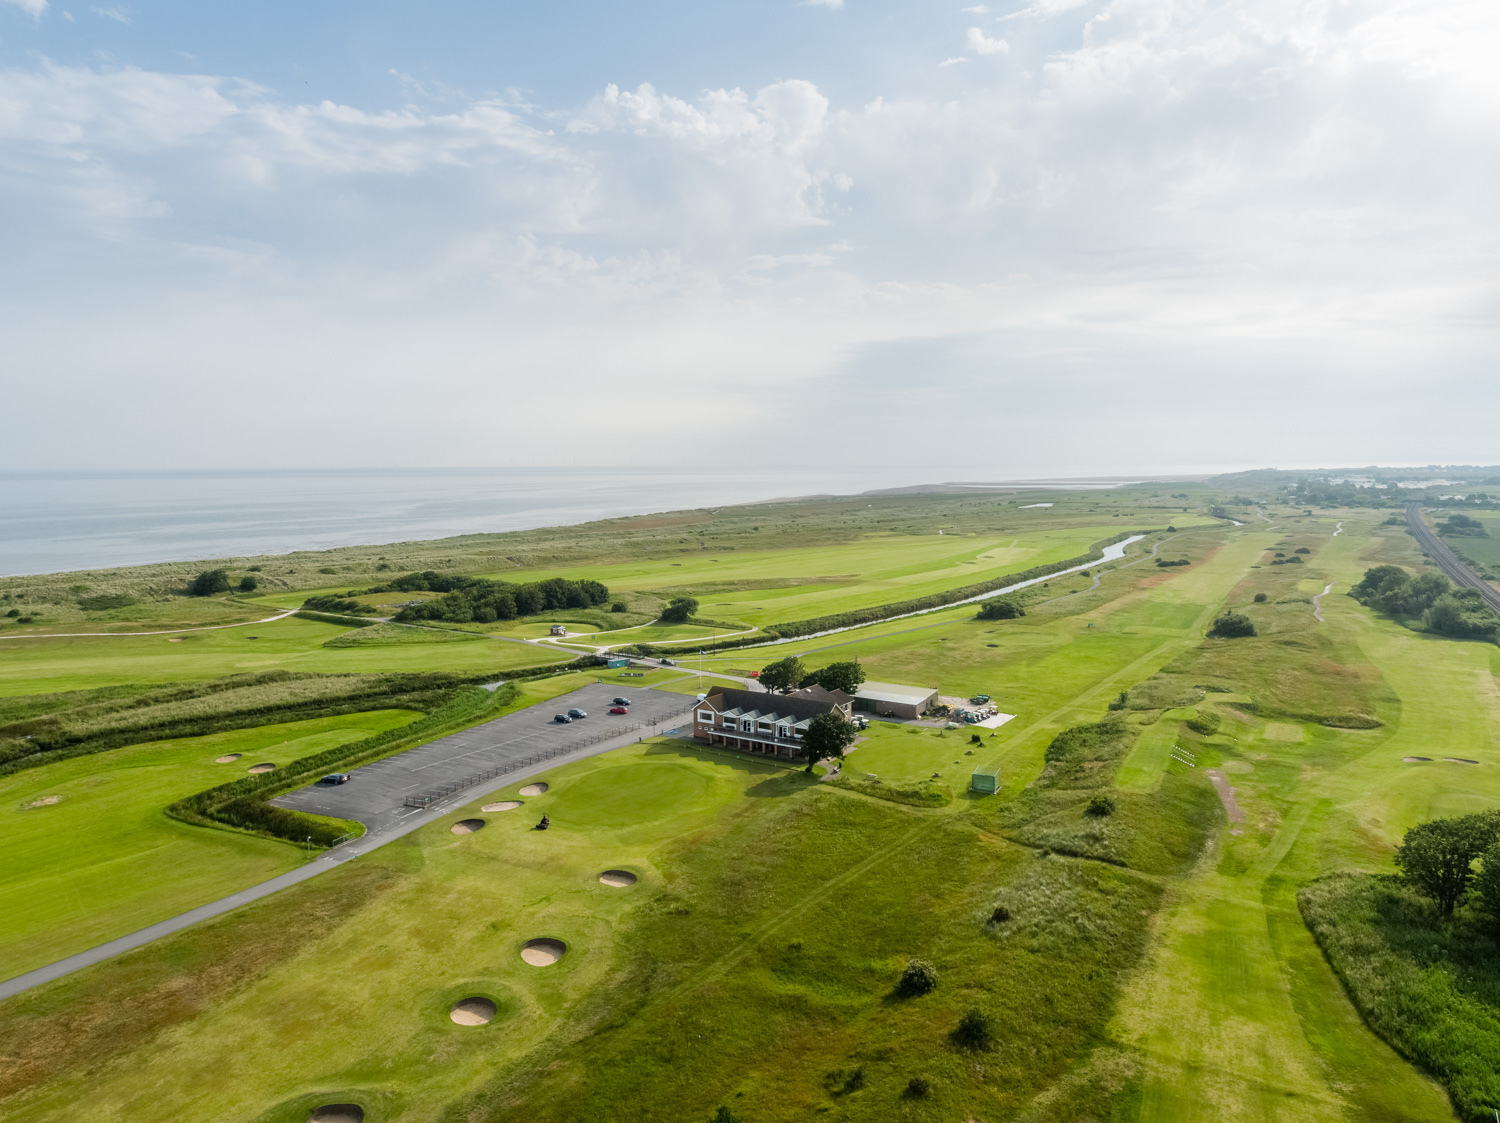 Drone_Filming_aerial_imagery_north_wales - Prestatyn_Golf_Club_Drone-0065.jpg